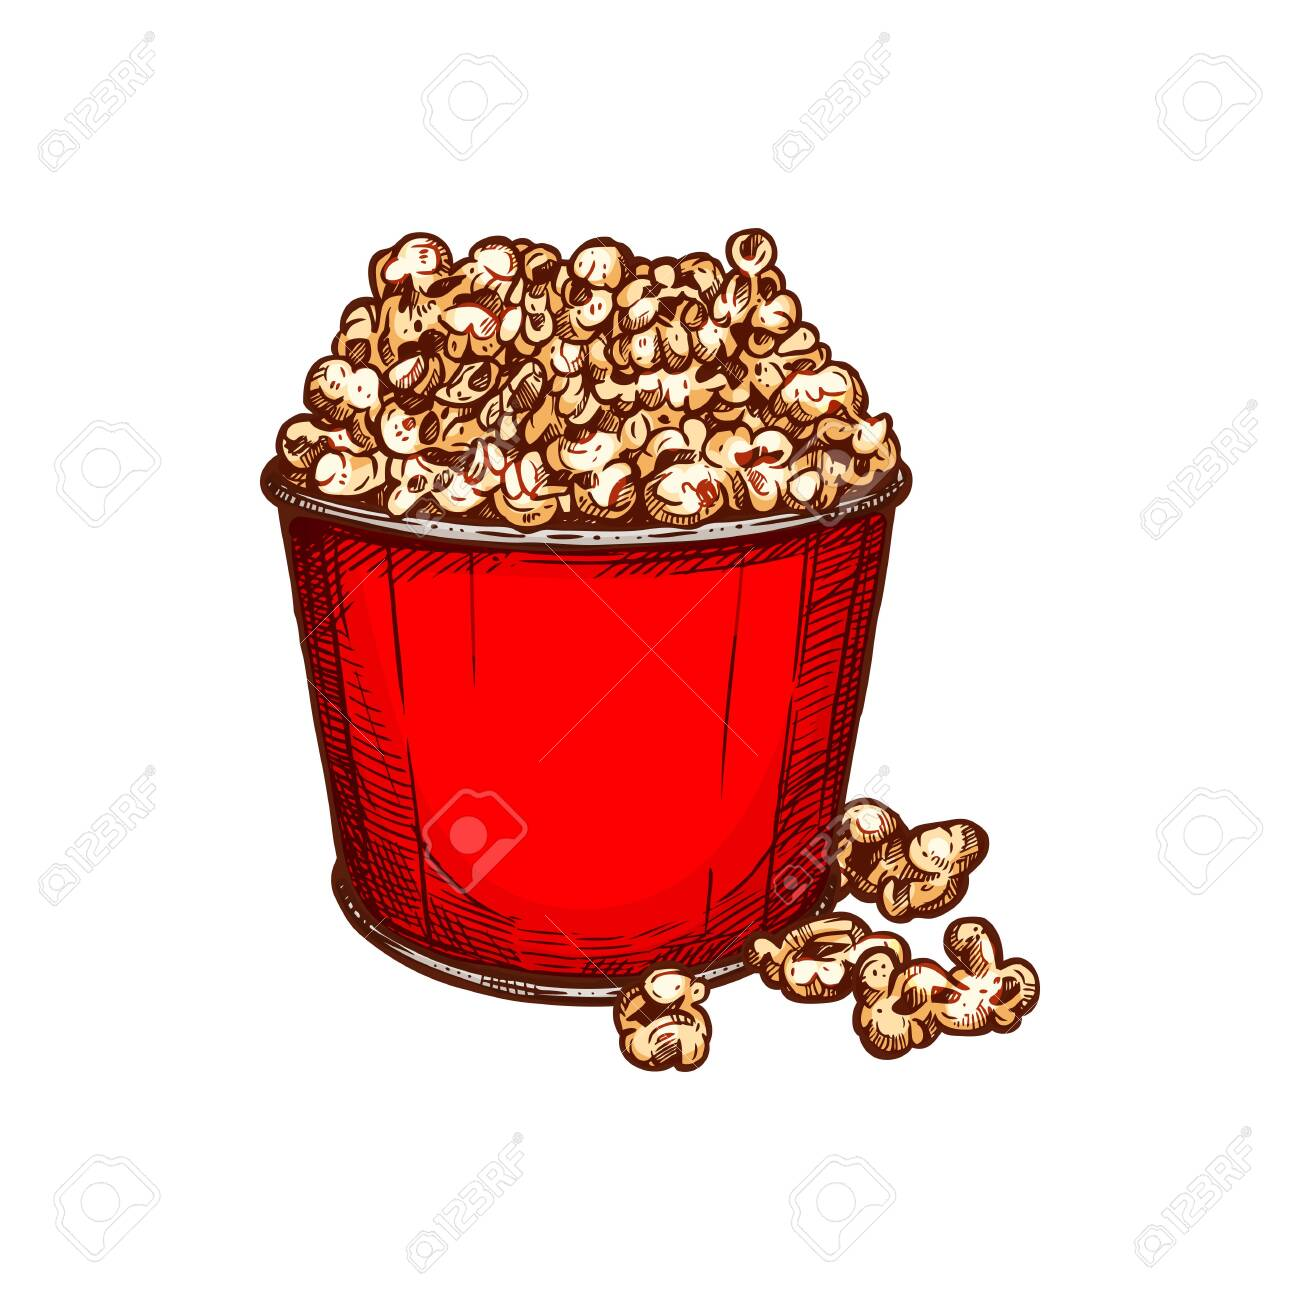 Fastfood Snack Isolated Popcorn Red Bucket Sketch Vector Movie Royalty Free Cliparts Vectors And Stock Illustration Image 144445605